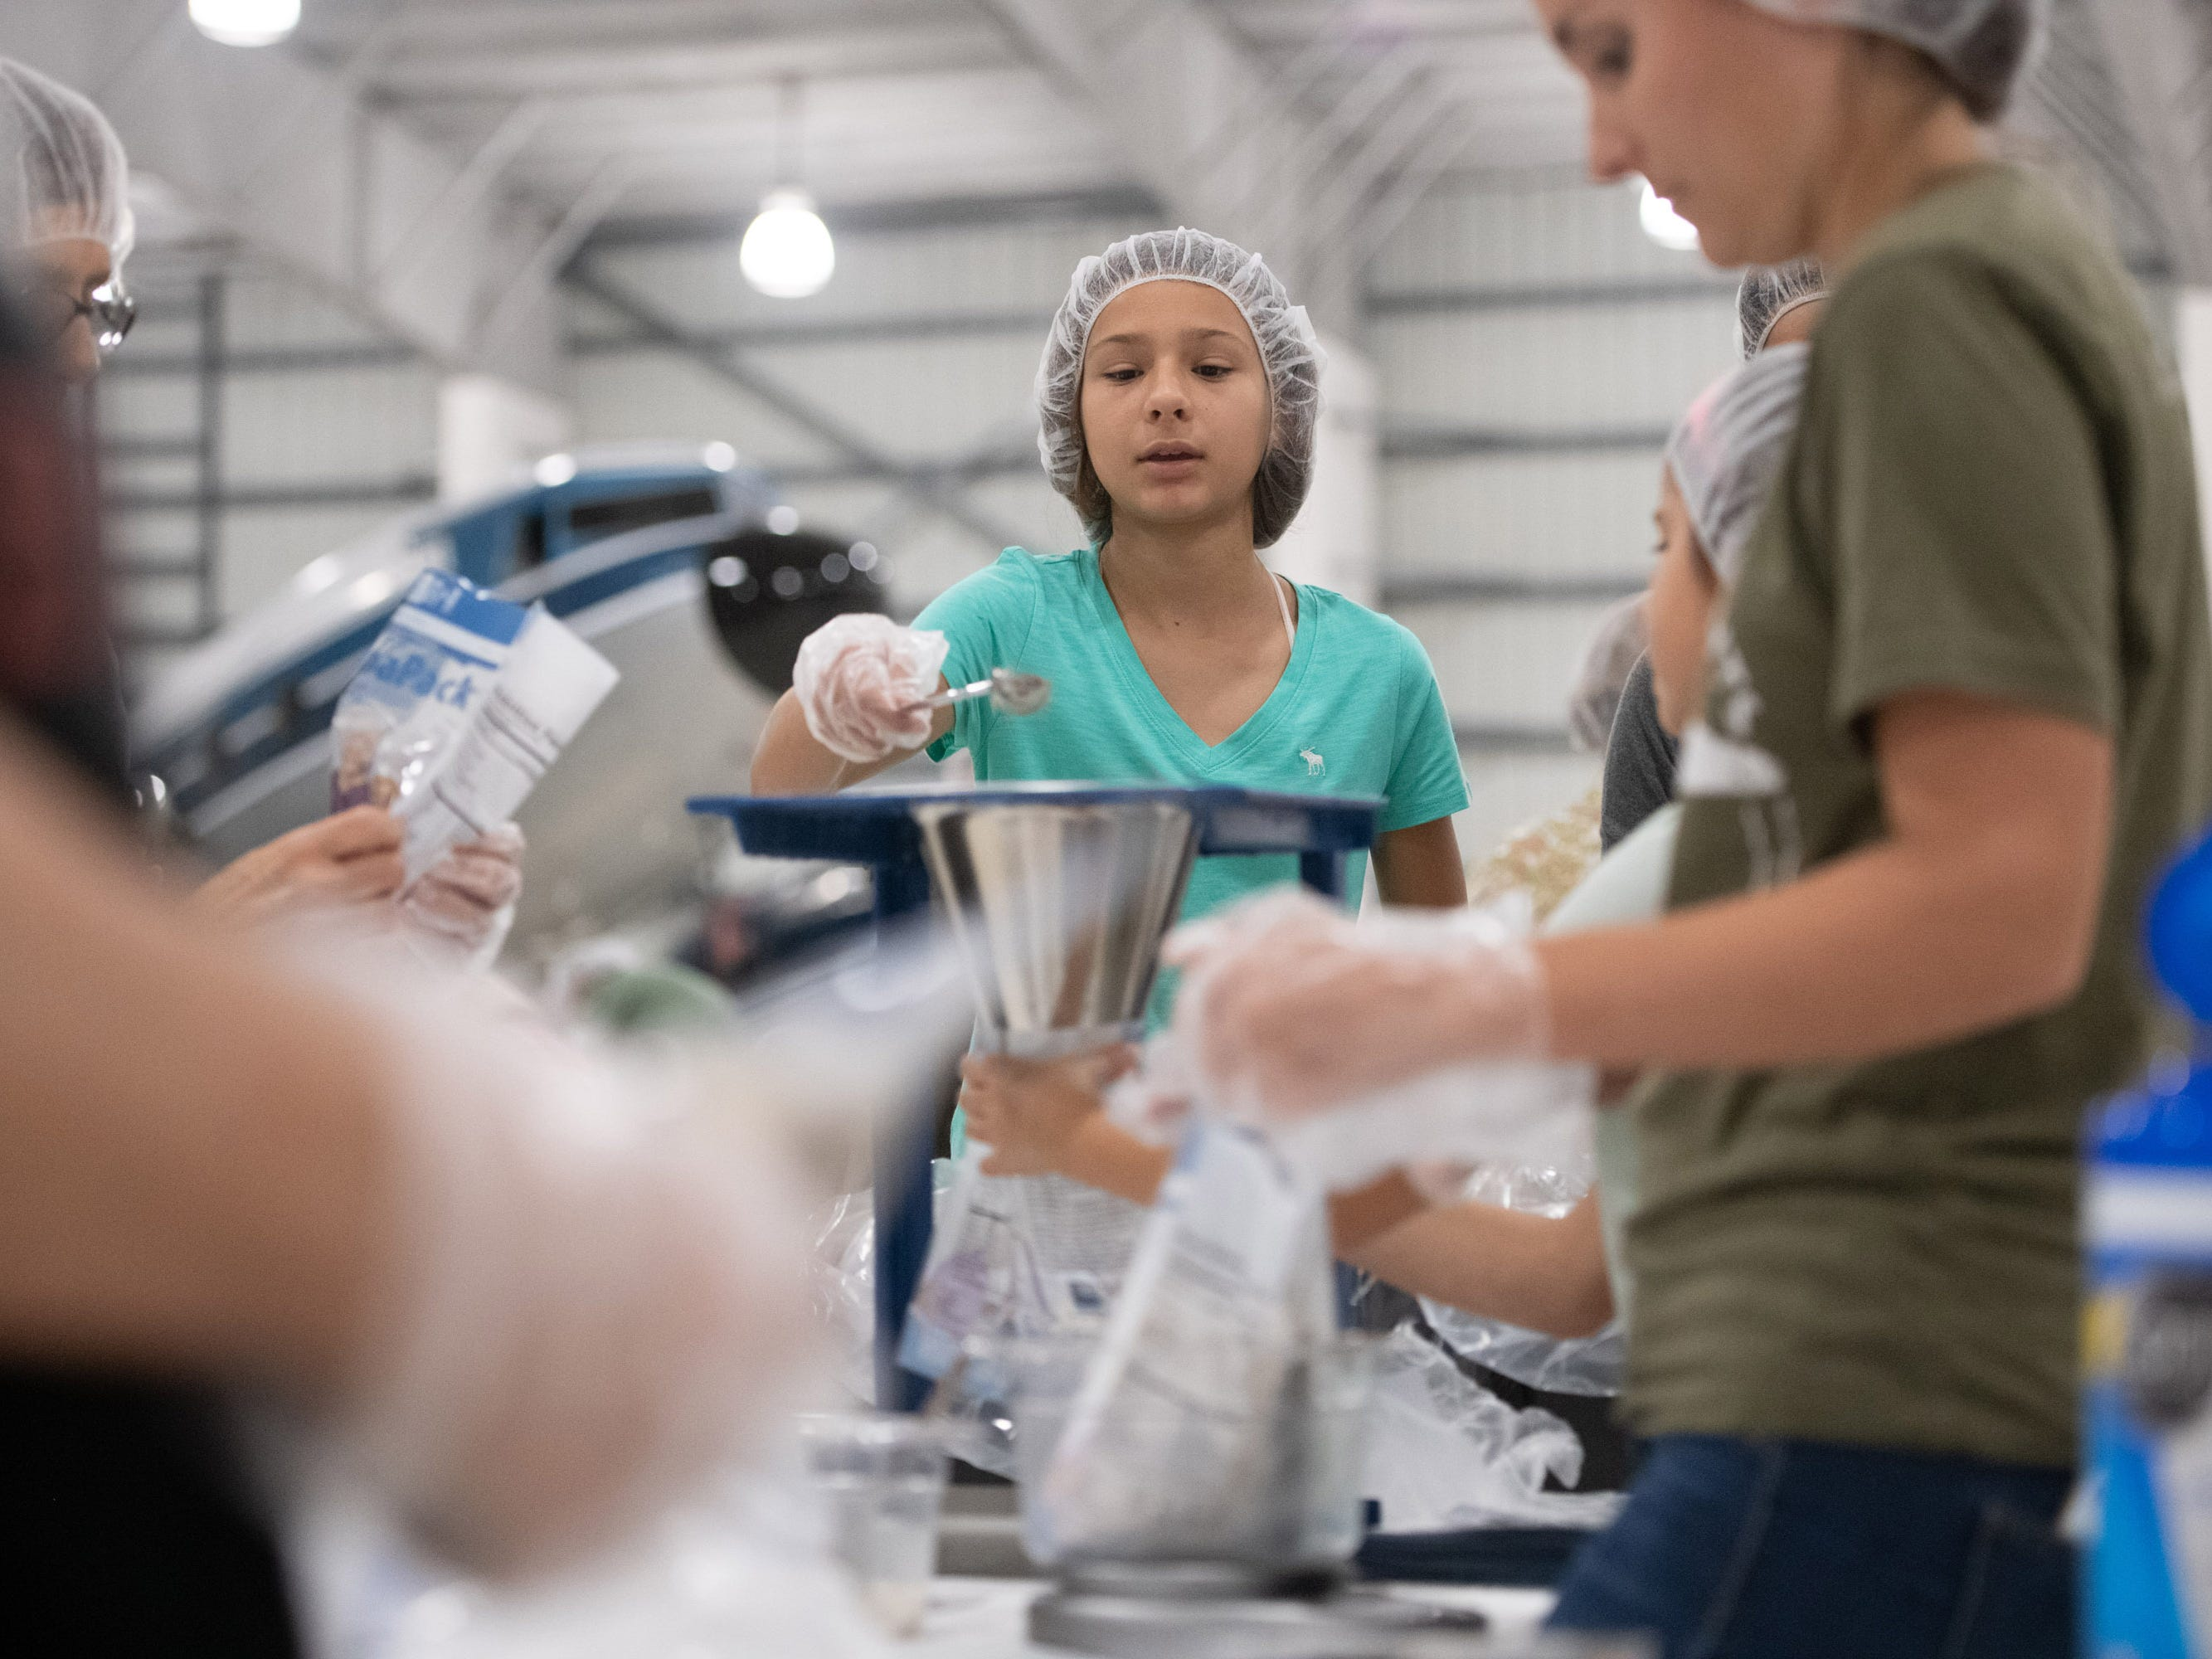 Community volunteers help pack food designed especially for starving children for Missionary Flights International, who is partnering with Feed My Starving Children to serve missionaries in Haiti, the Dominican Republic, the Bahamas, and in events of disaster throughout the Caribbean, on Saturday, Jan. 12, 2019, at Missionary Flights International in Fort Pierce.